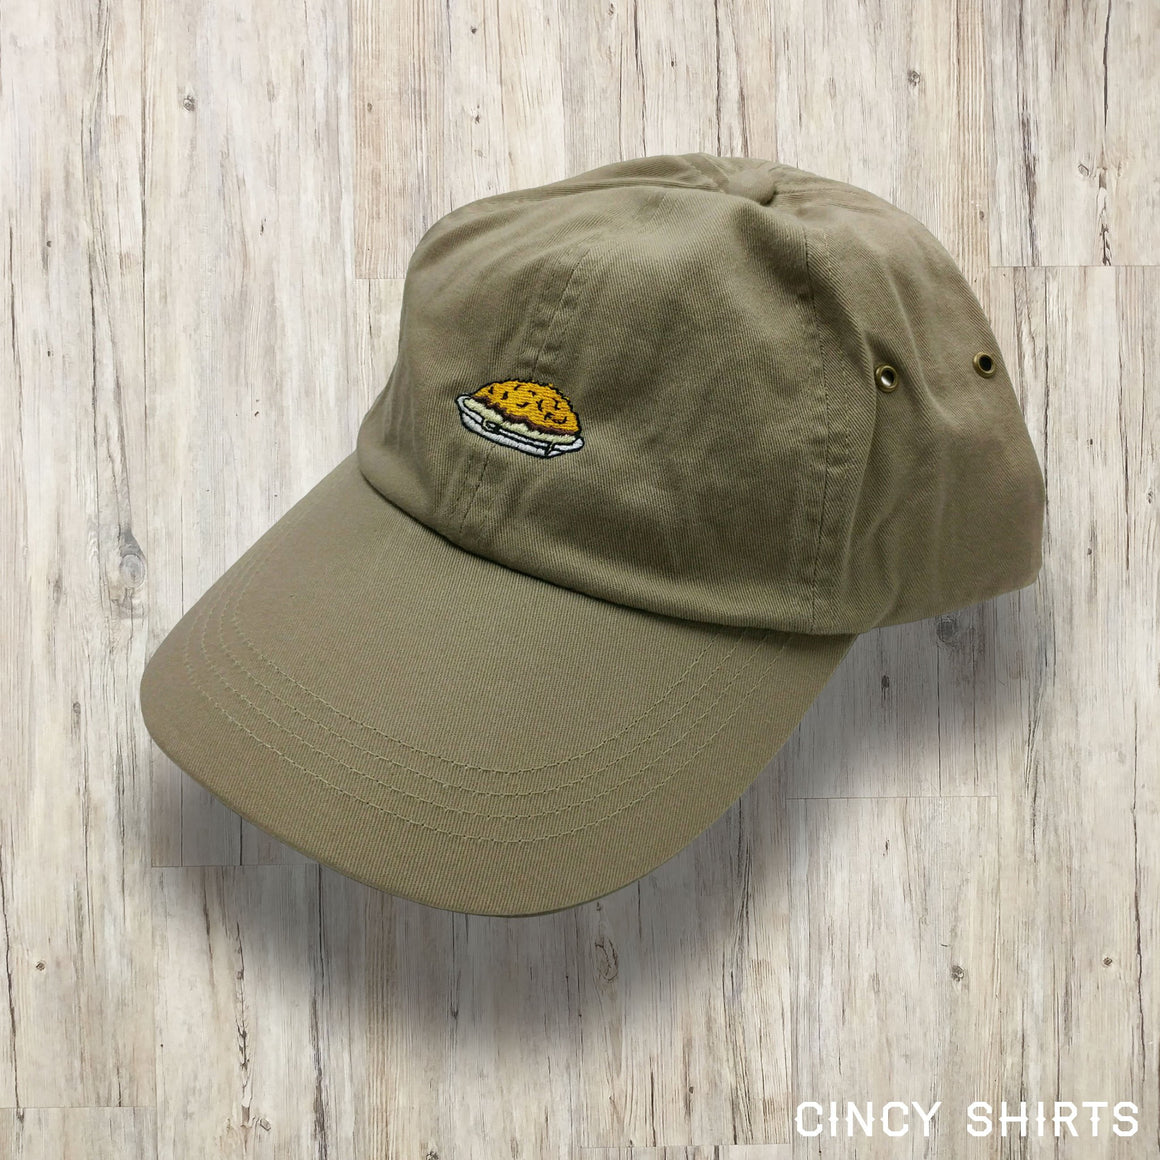 Event Cincy Chili Dad Hat